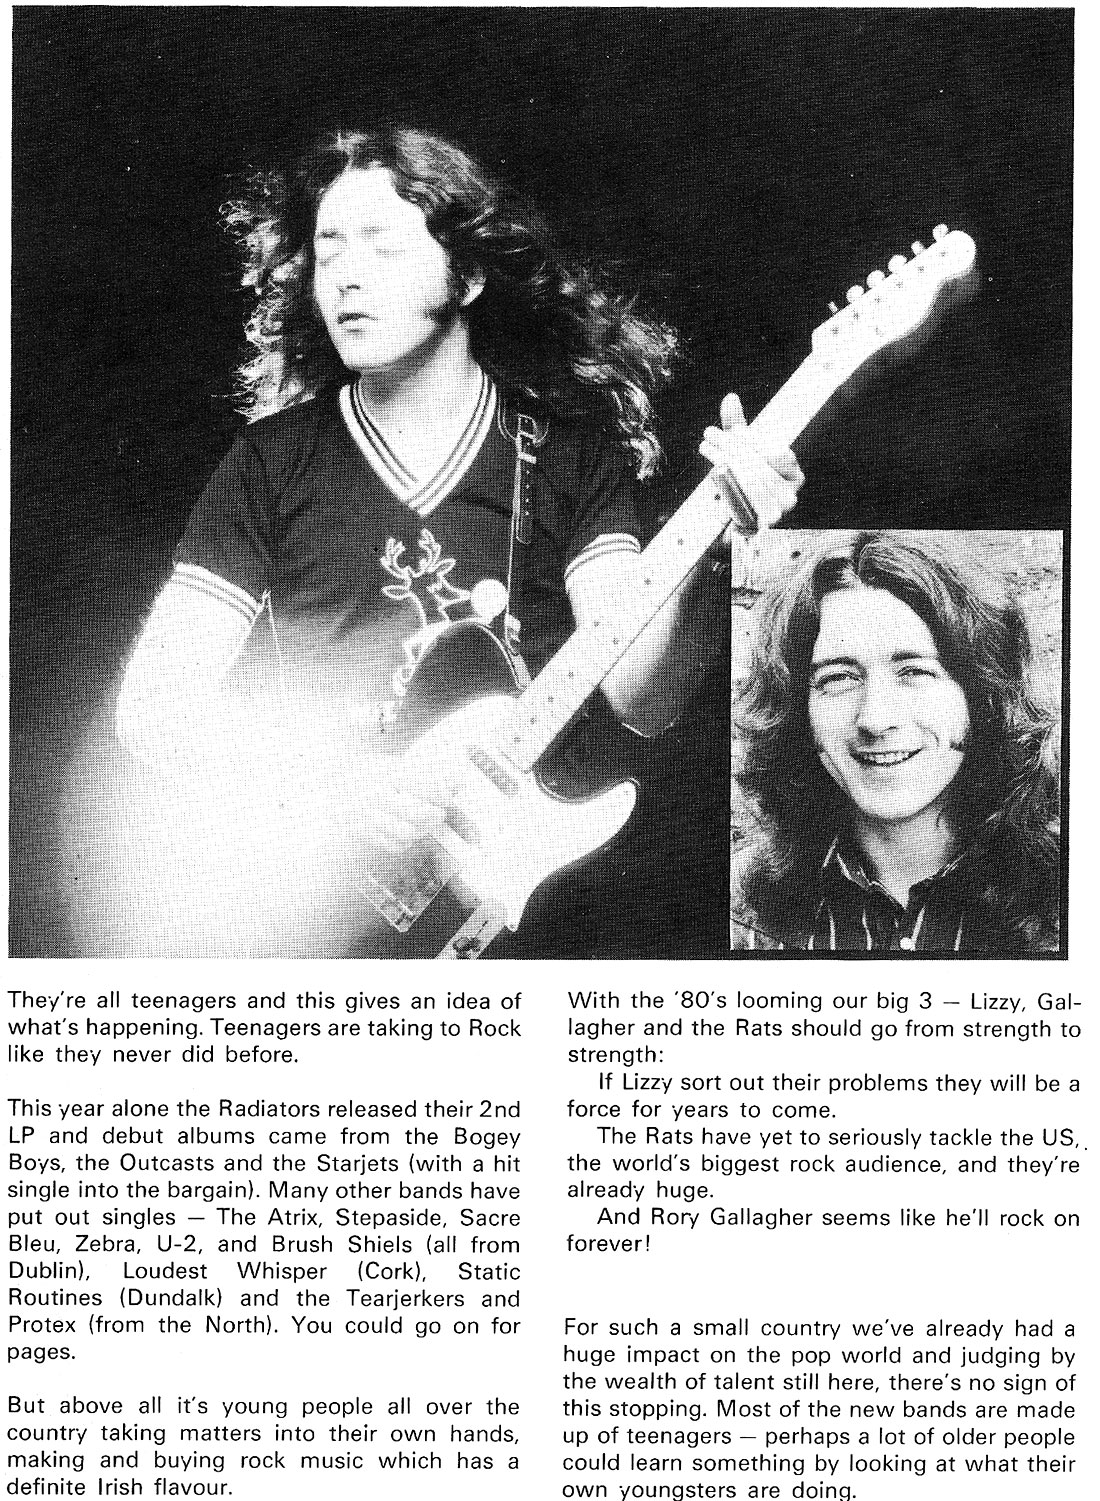 Ian Wilson youngline 1980 rory gallagher